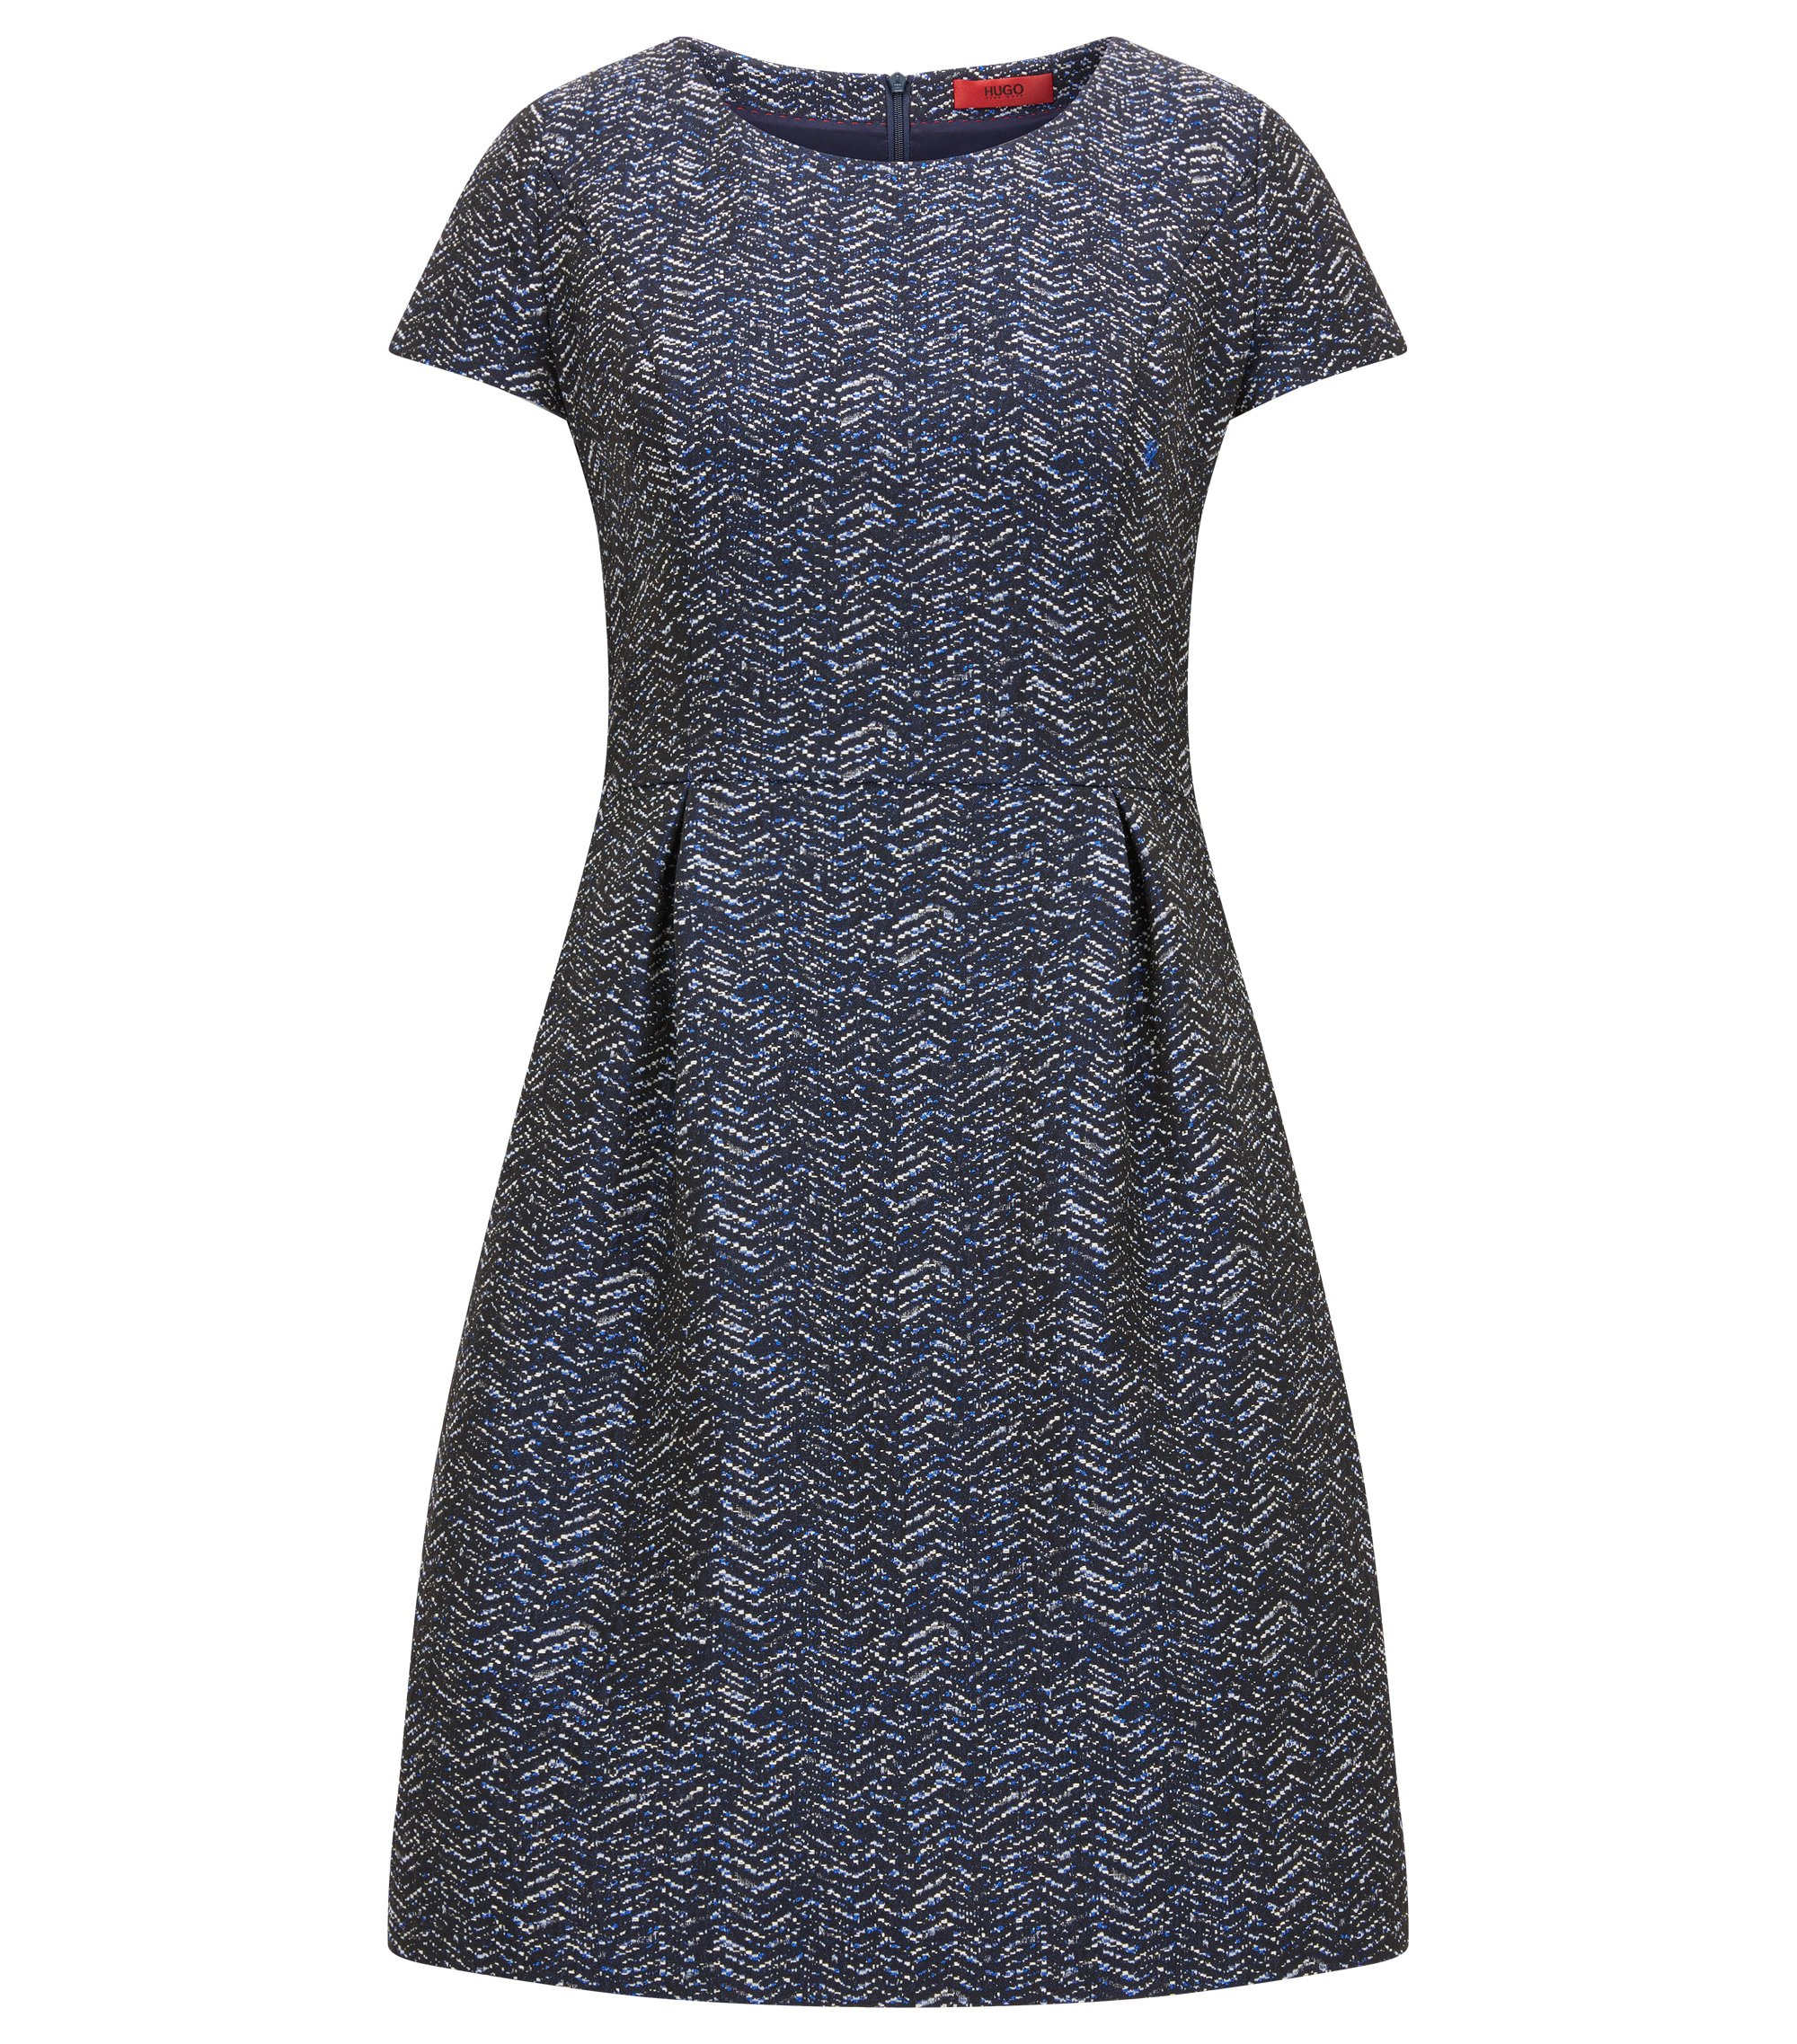 Short-sleeved dress in zig zag jacquard, Dark Blue